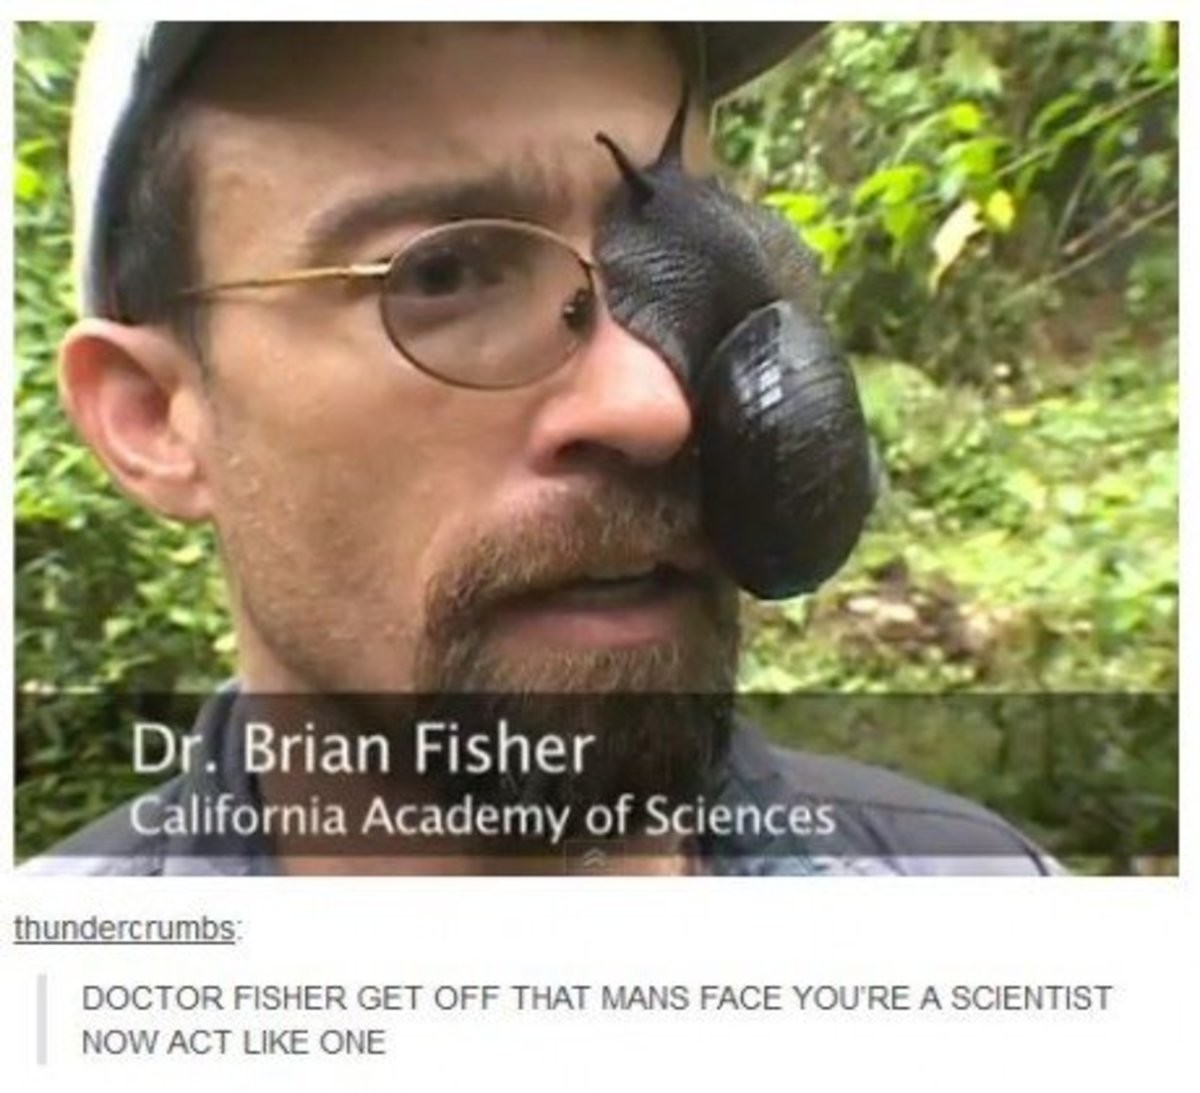 Identifies as a snail. . Dr. Brian Fisher thunder: rumba: DOCTOR FISHER GET OFF THAT MAINS FACE YOU' RE A SCIENTIST NOW ACT LIKE ONE